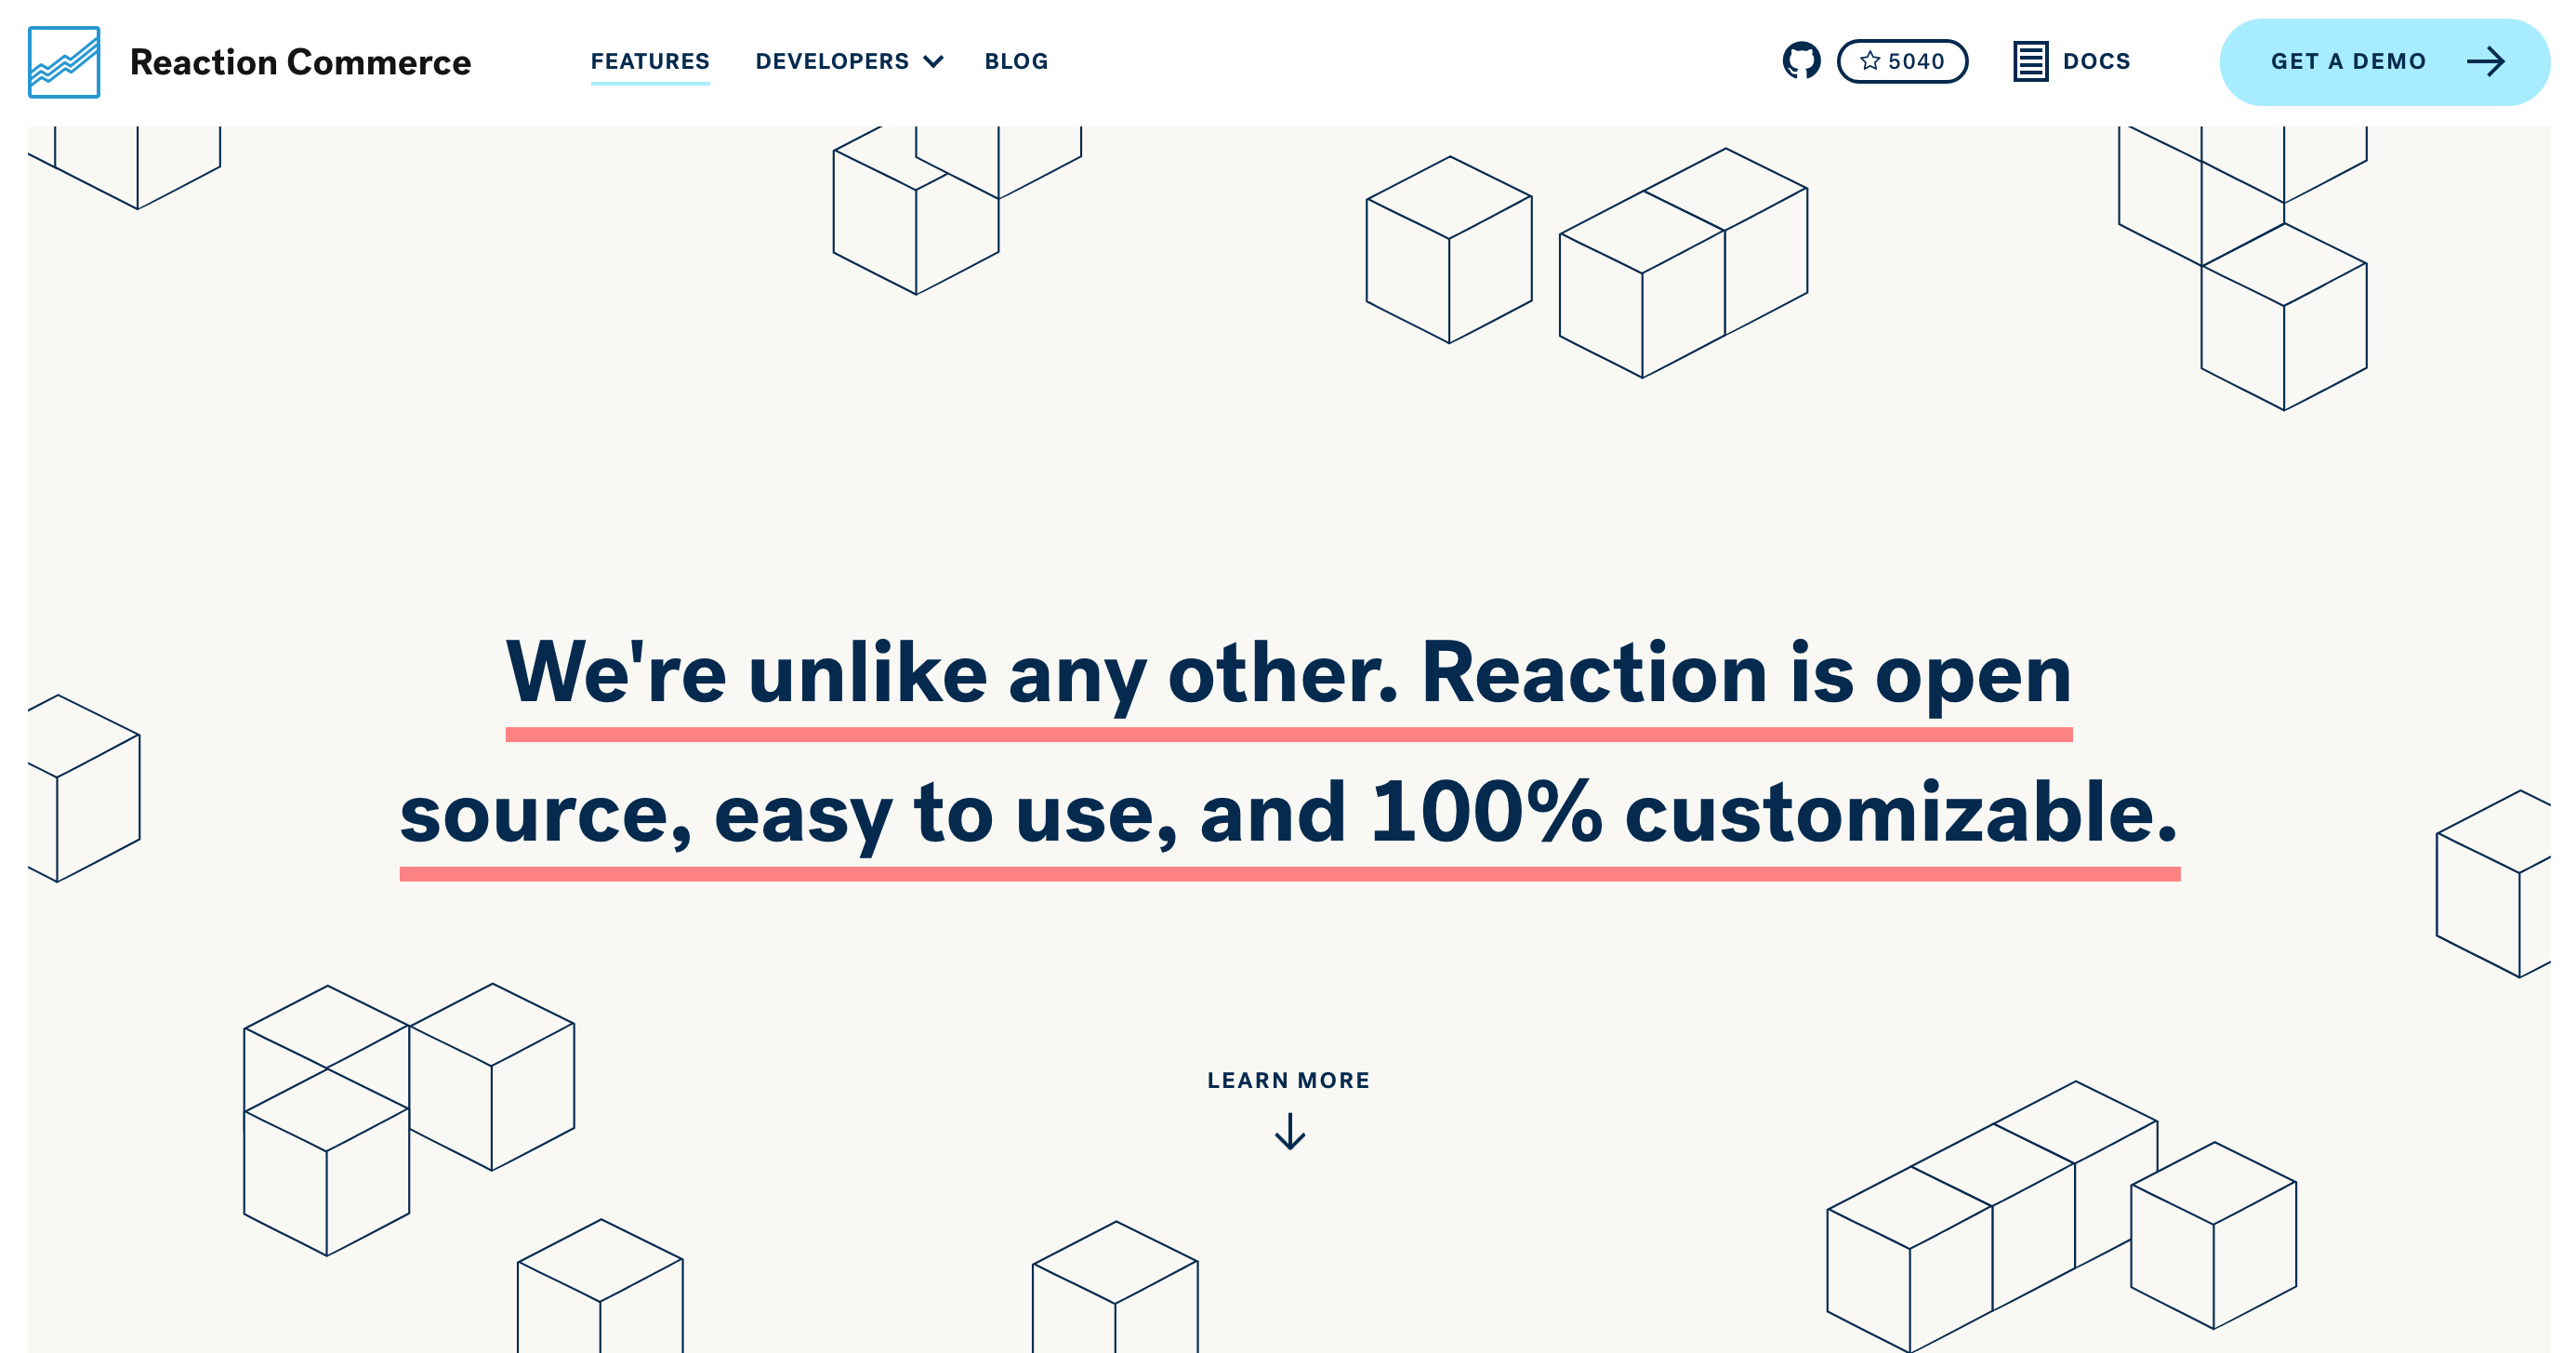 Reaction Commerce Wellmade